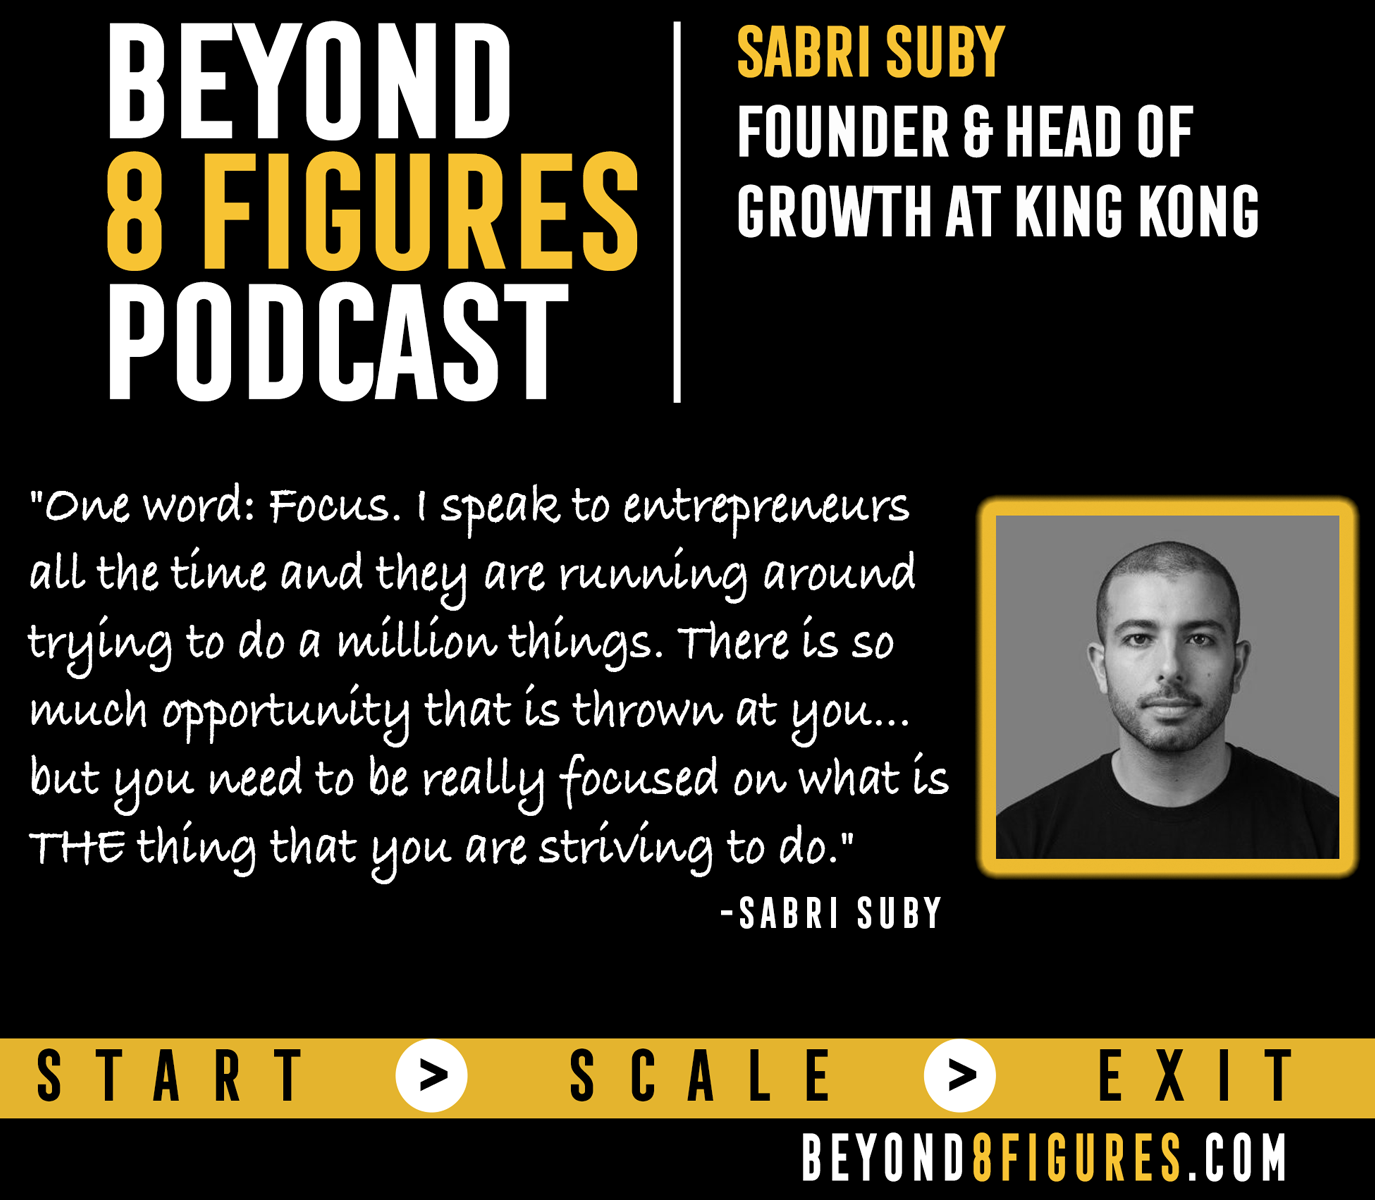 $10M+ in annual revenue- Sabri Suby, King Kong